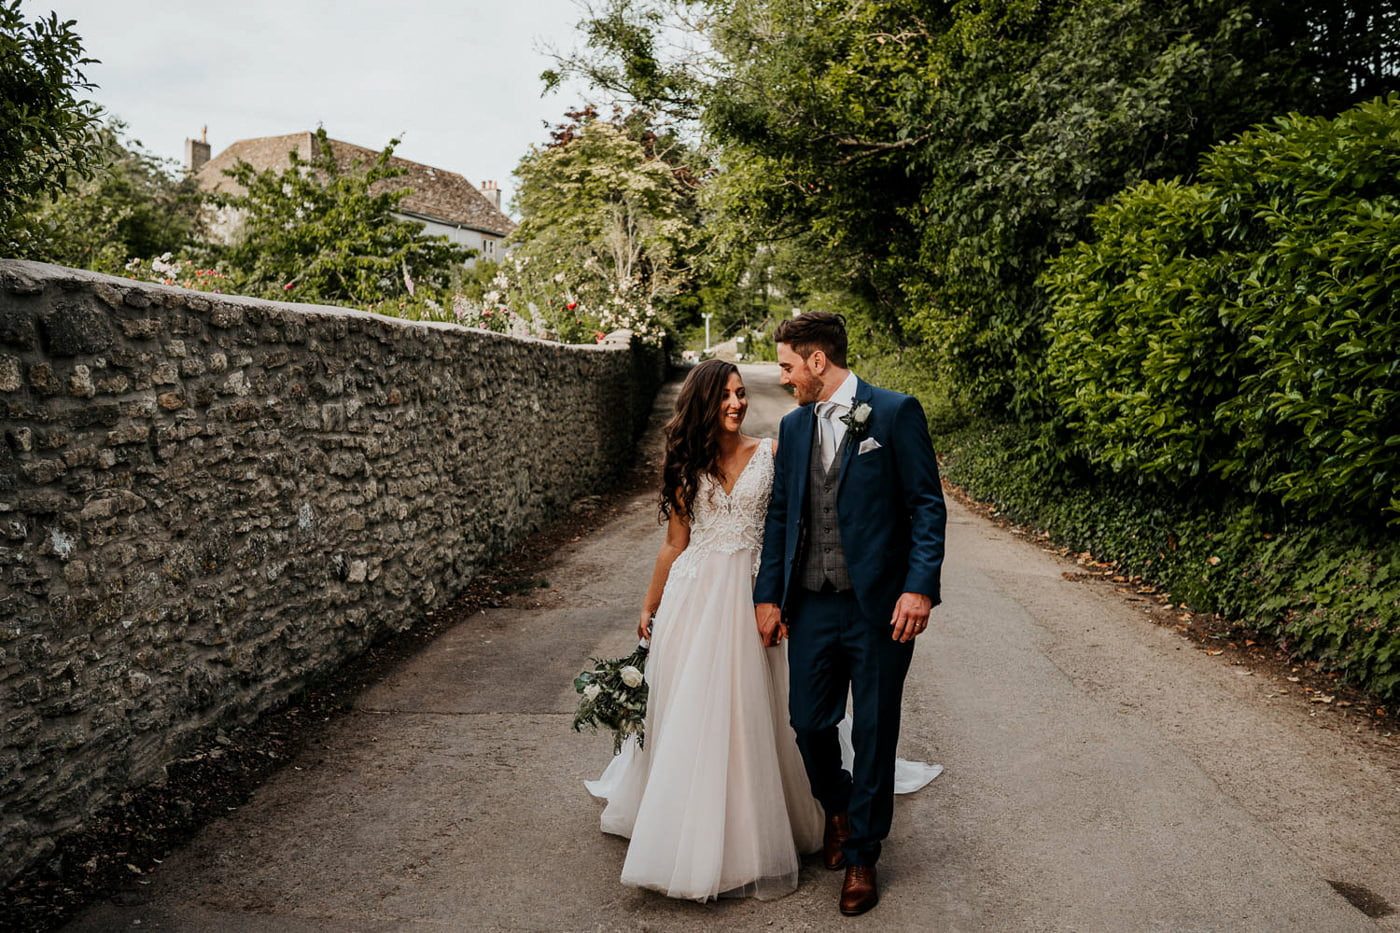 bride and groom walking through countryside village